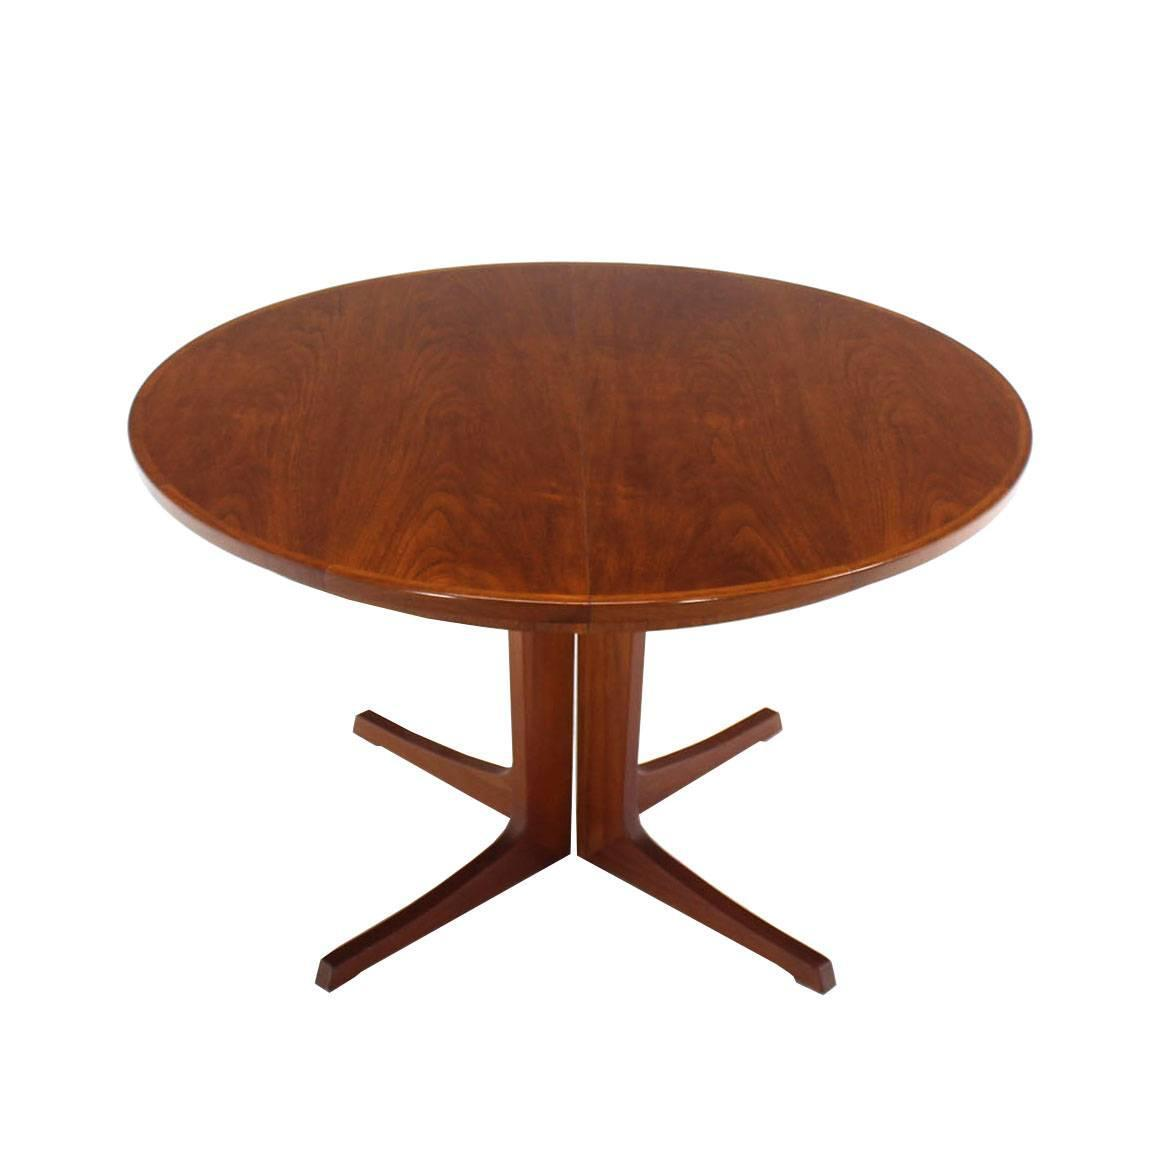 round danish mid century modern teak dining table with two leaves at 1stdibs. Black Bedroom Furniture Sets. Home Design Ideas